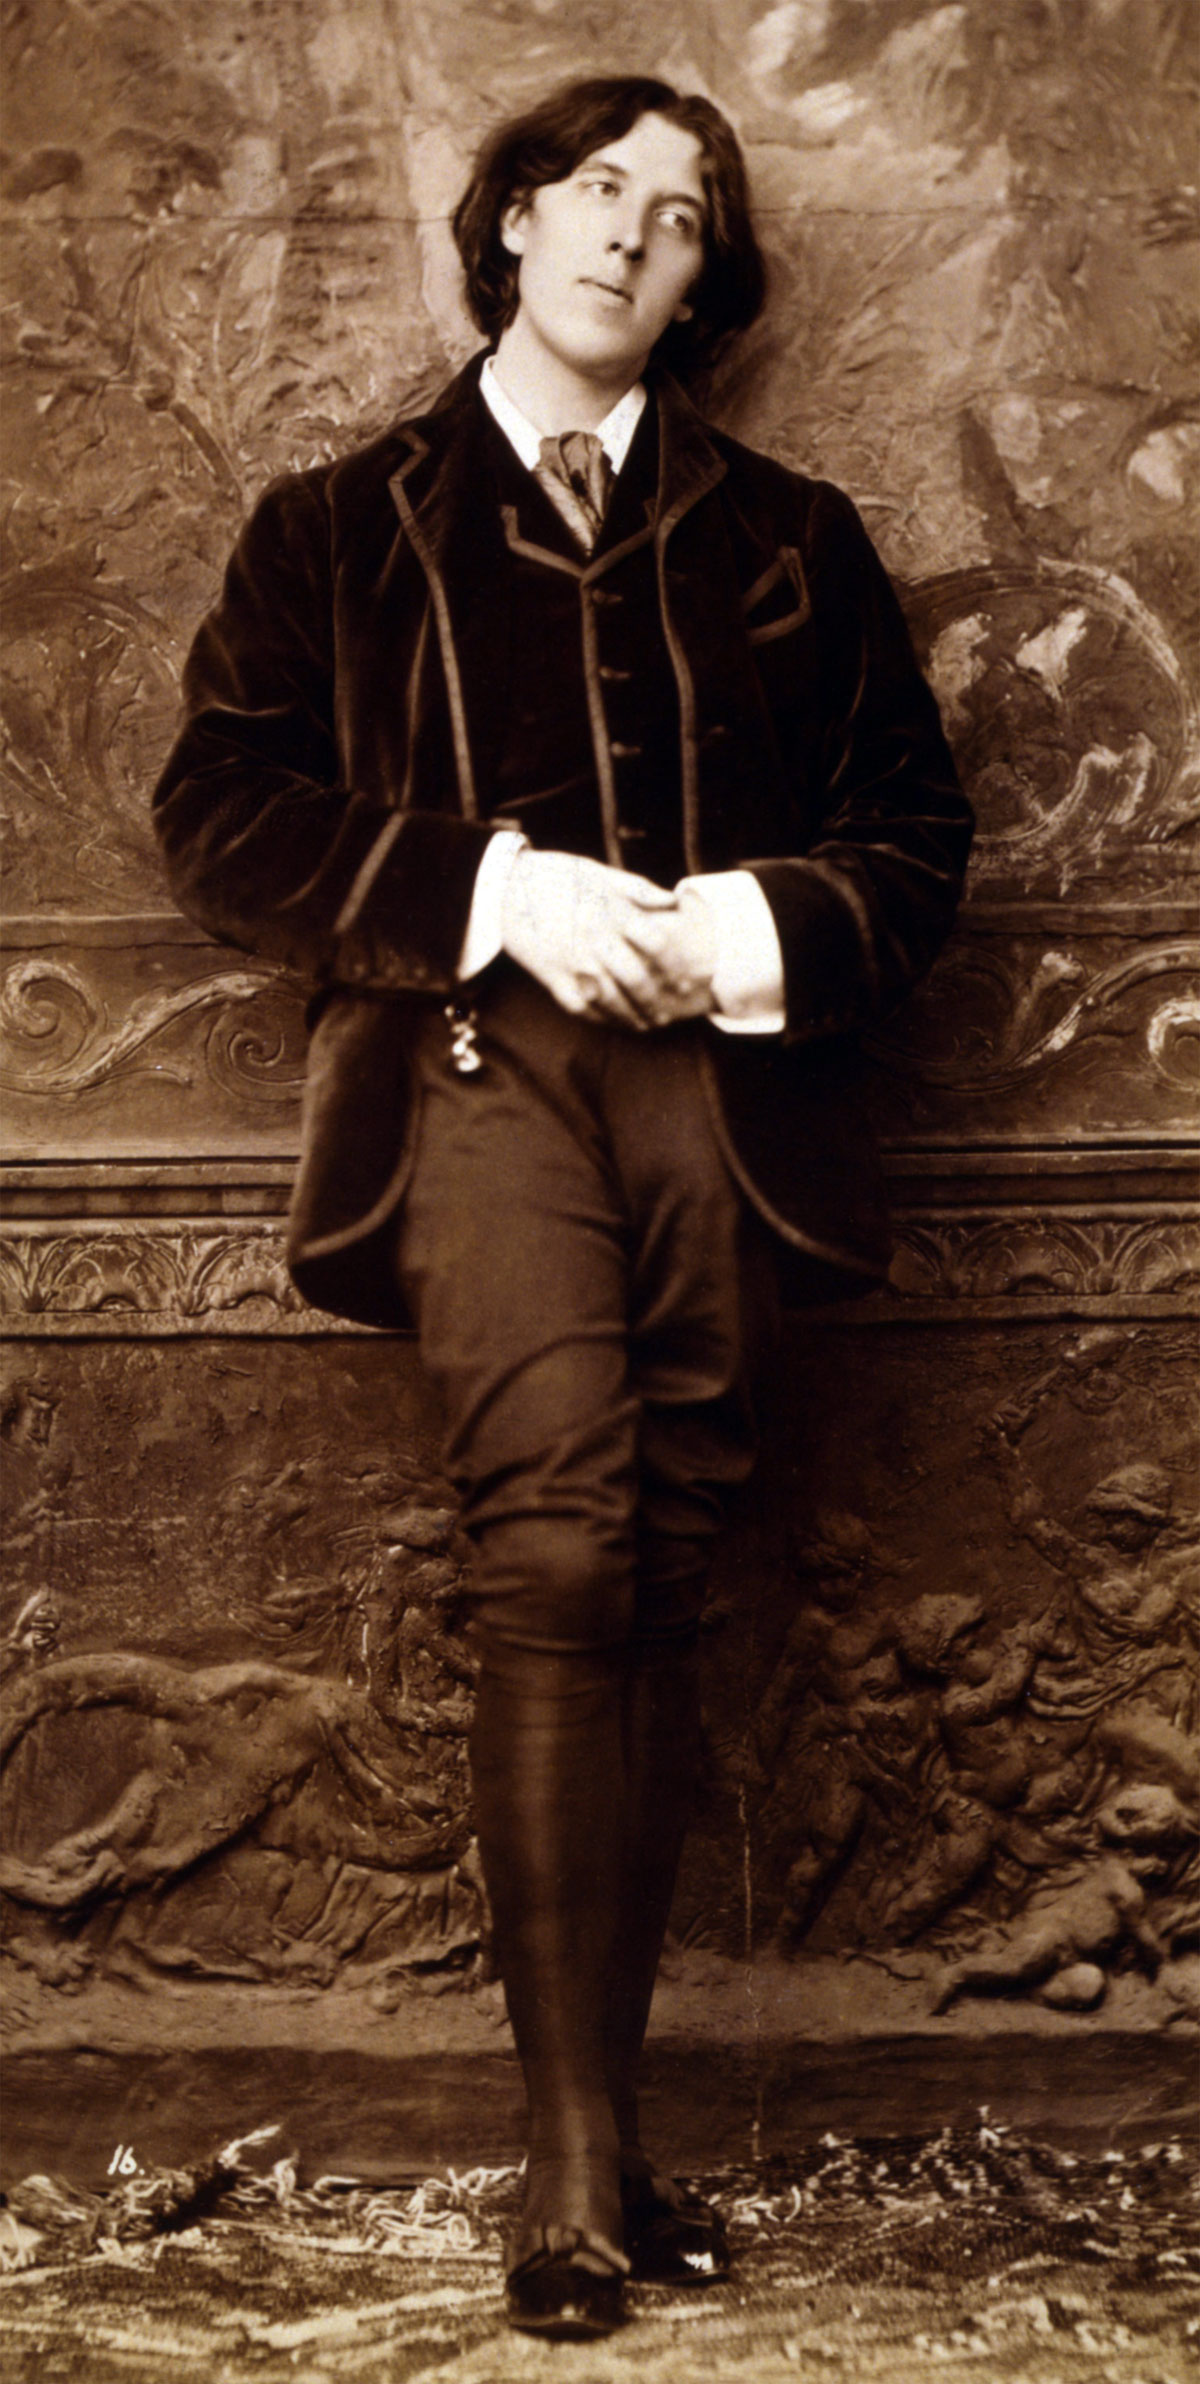 a biography of oscar wilde After his death: his friend frank harris wrote a biography richard ellmann wrote 'oscar wilde' (1987 and neil mckenna wrote 'the secret life of oscar wilde' (2003) two exceptional films were made about his life: 'the trials of oscar wilde (1960) starring peter finch and wilde (1997) starring stephen fry'.